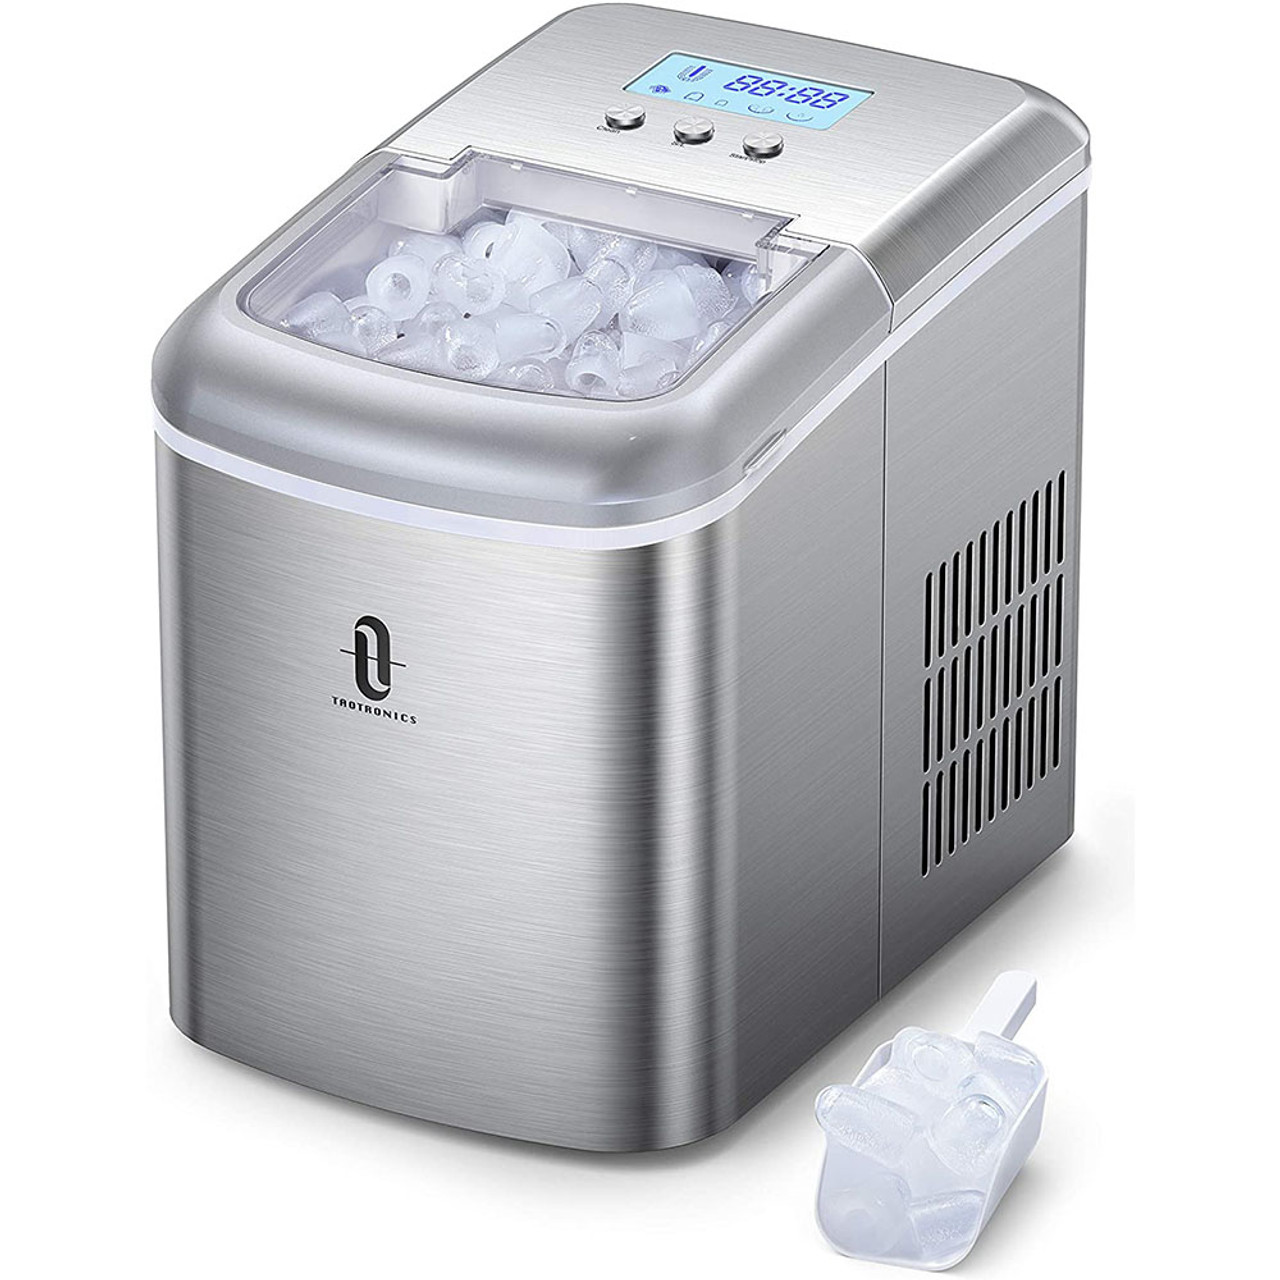 TaoTronics Countertop Ice Maker with LCD Display $89.99 (55% OFF)